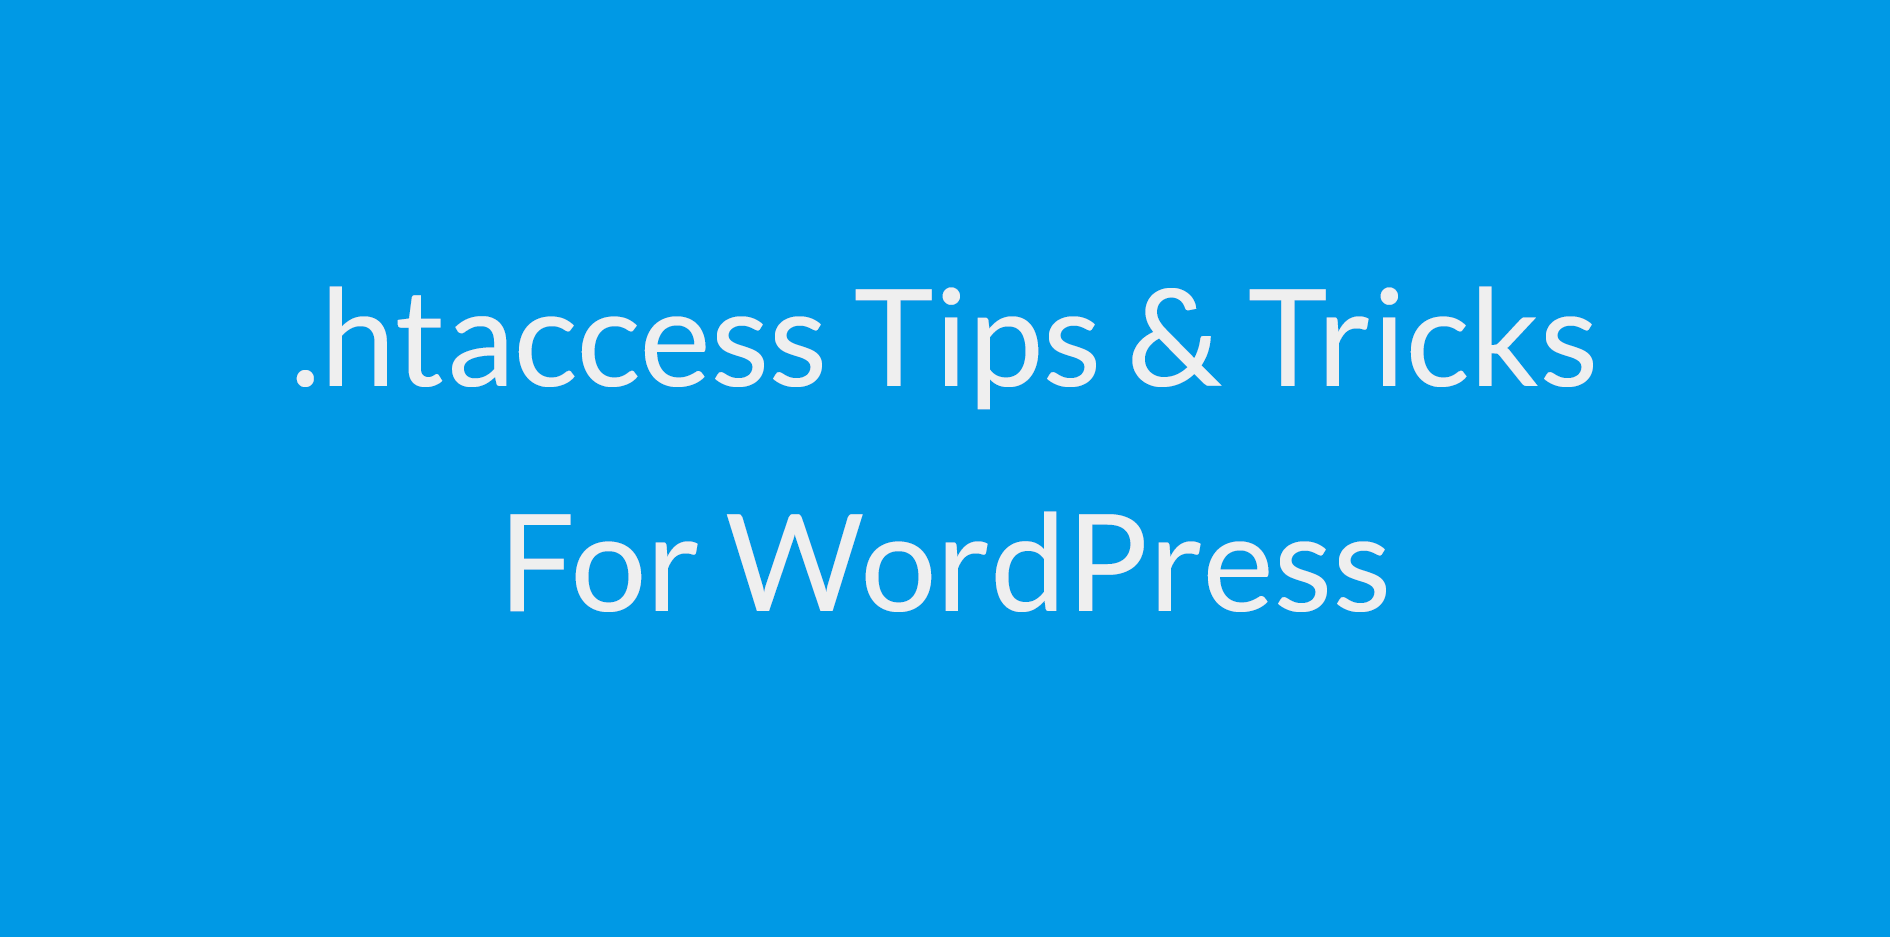 16 htaccess Hacks to Speed Up, Optimize and Secure WordPress - Make